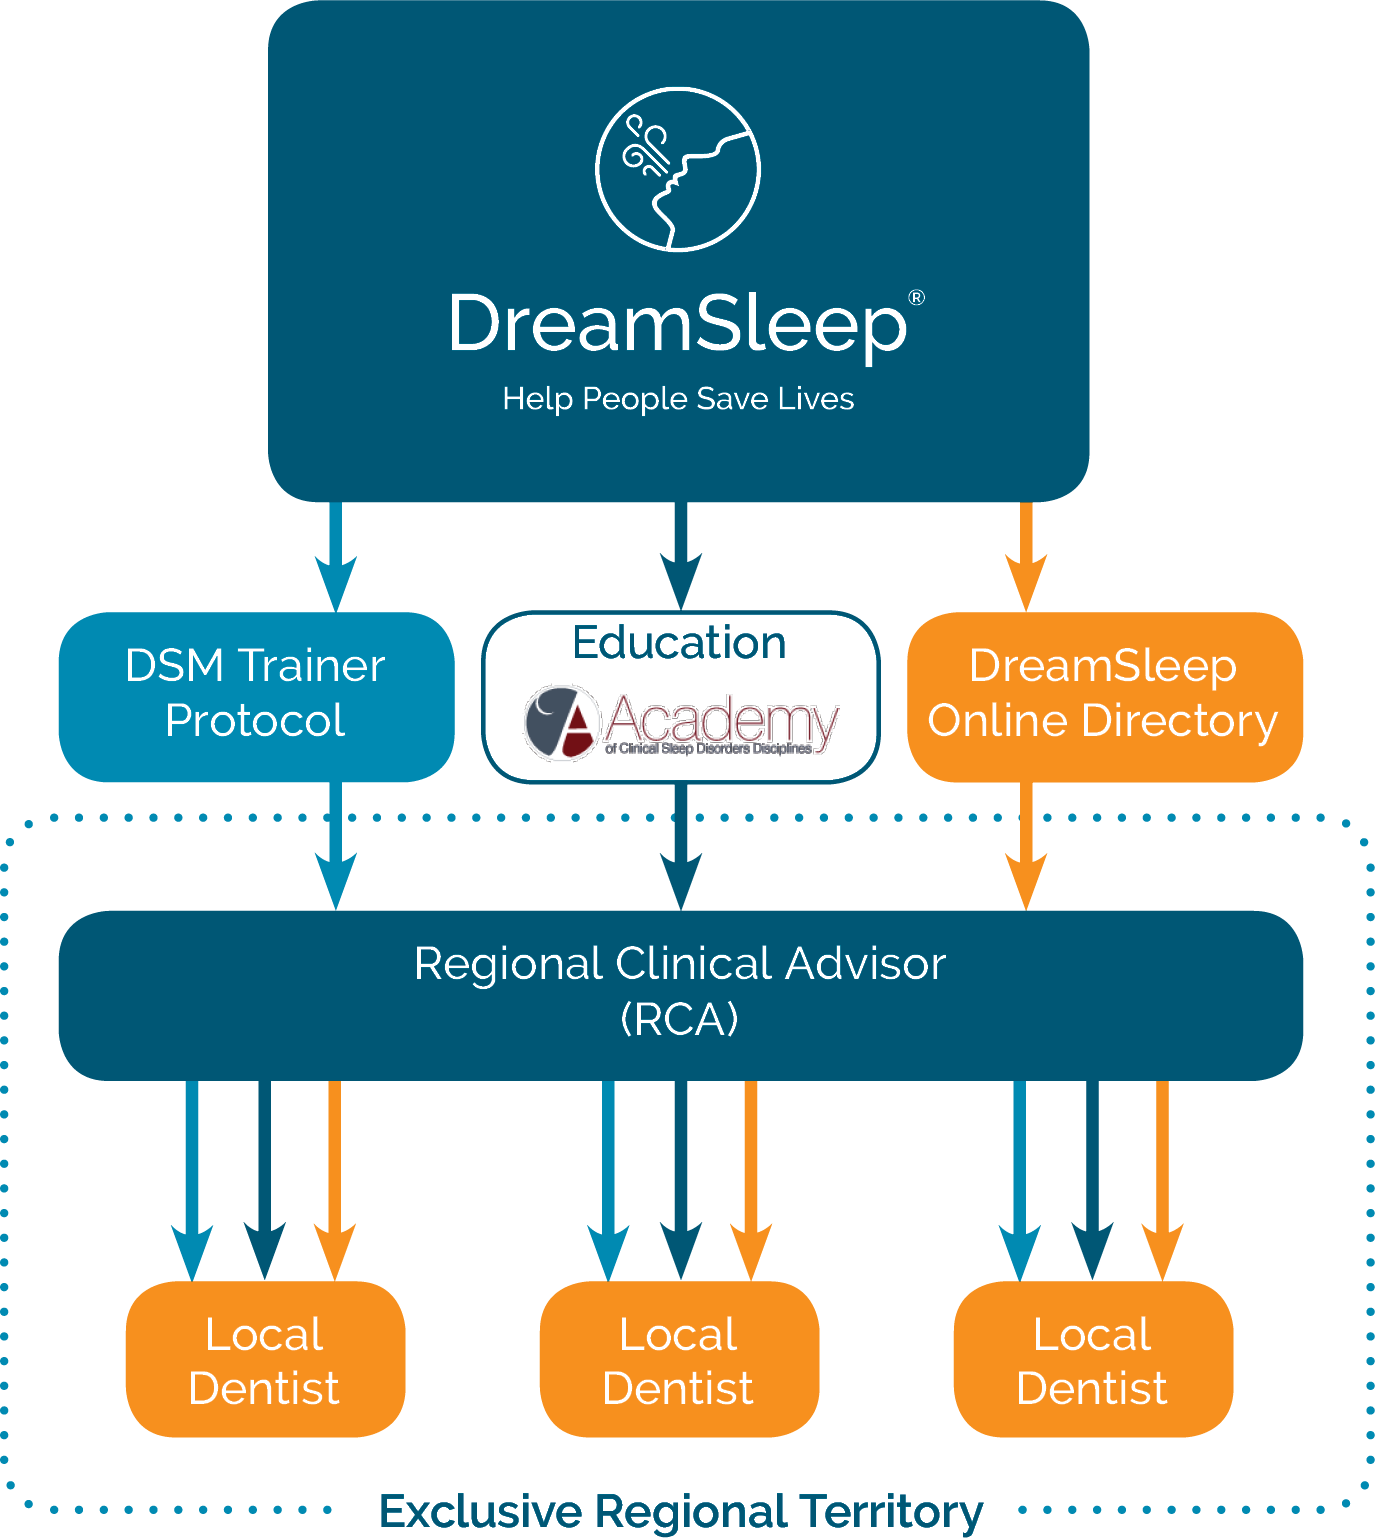 Building the DreamSleep International Network: Proven Methodology + Local Clinical Advisor